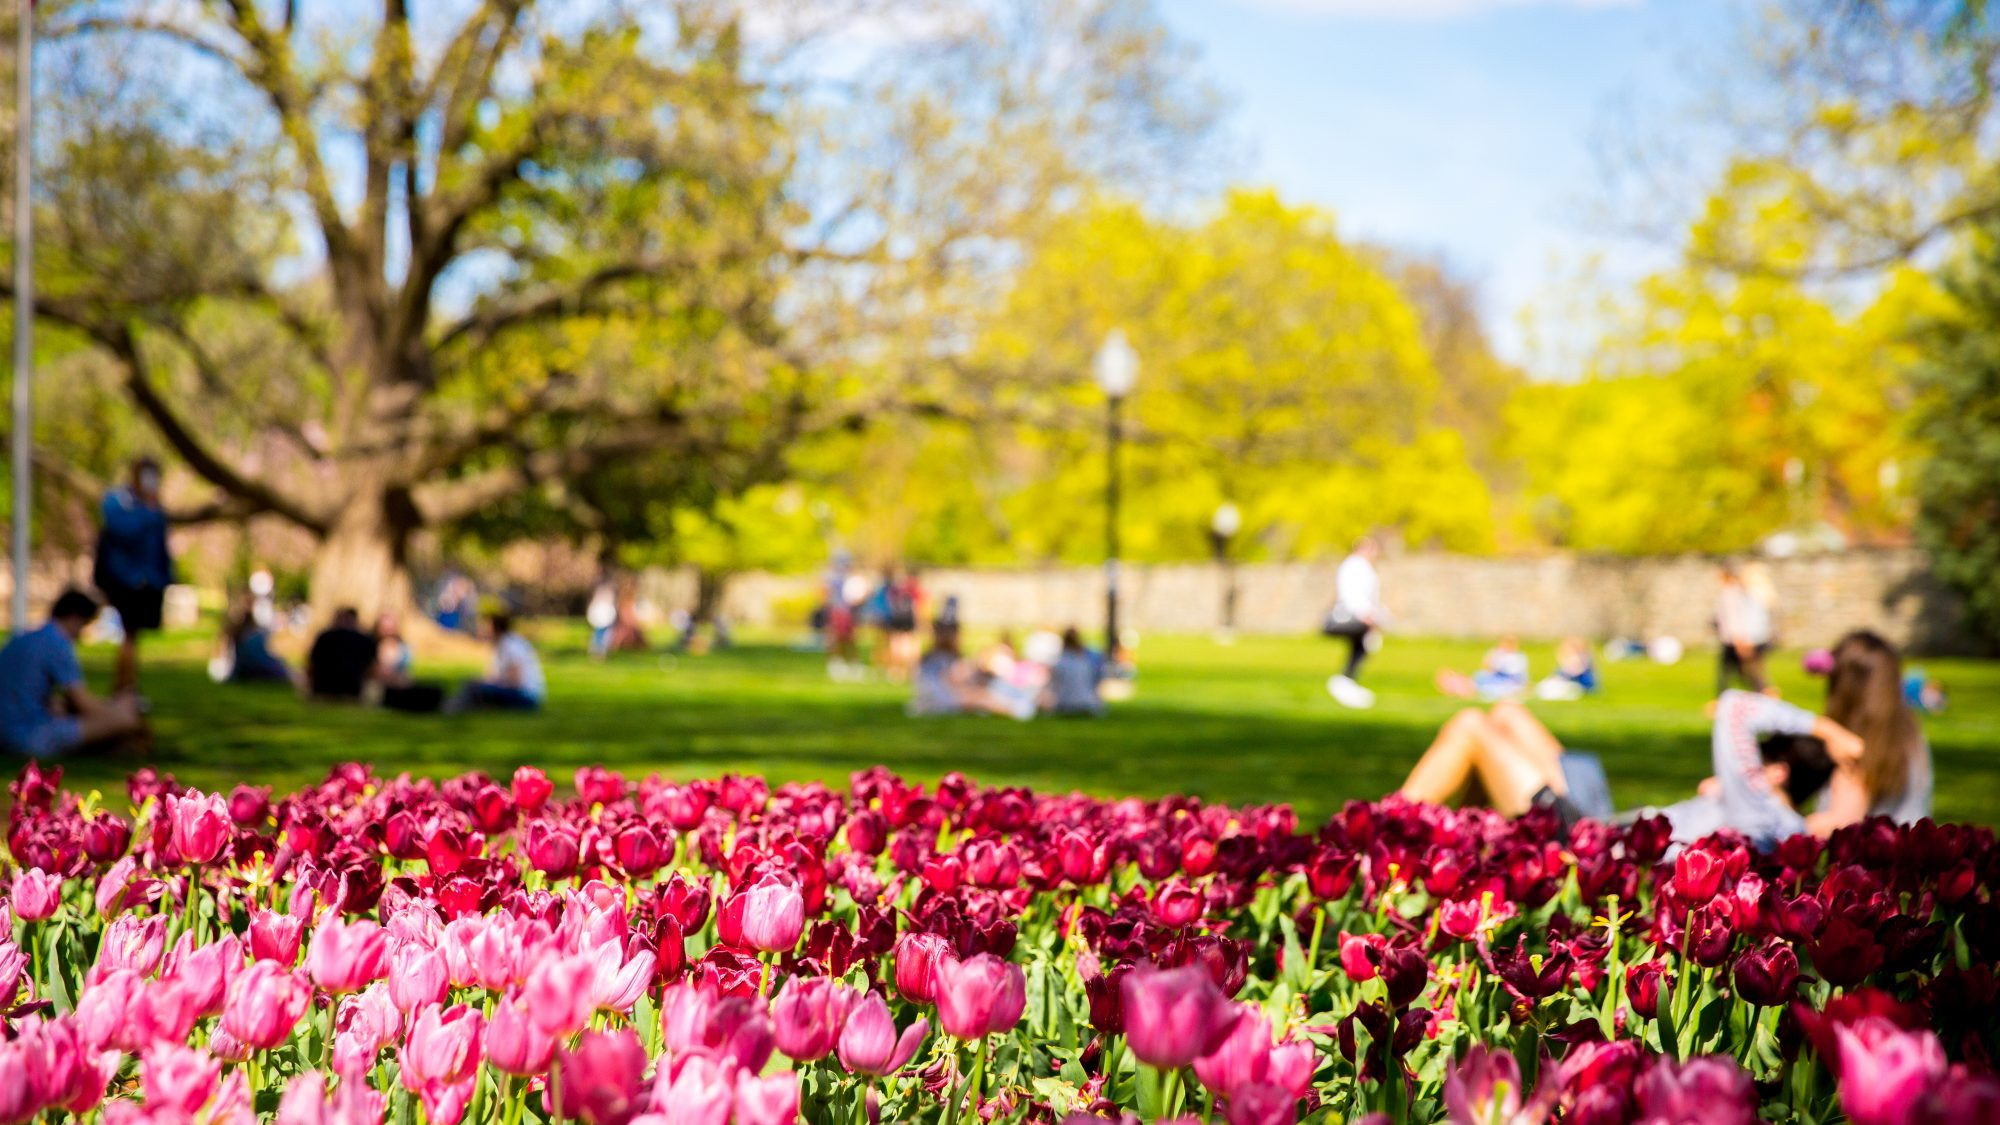 Campus in the spring with tulips in the forefront